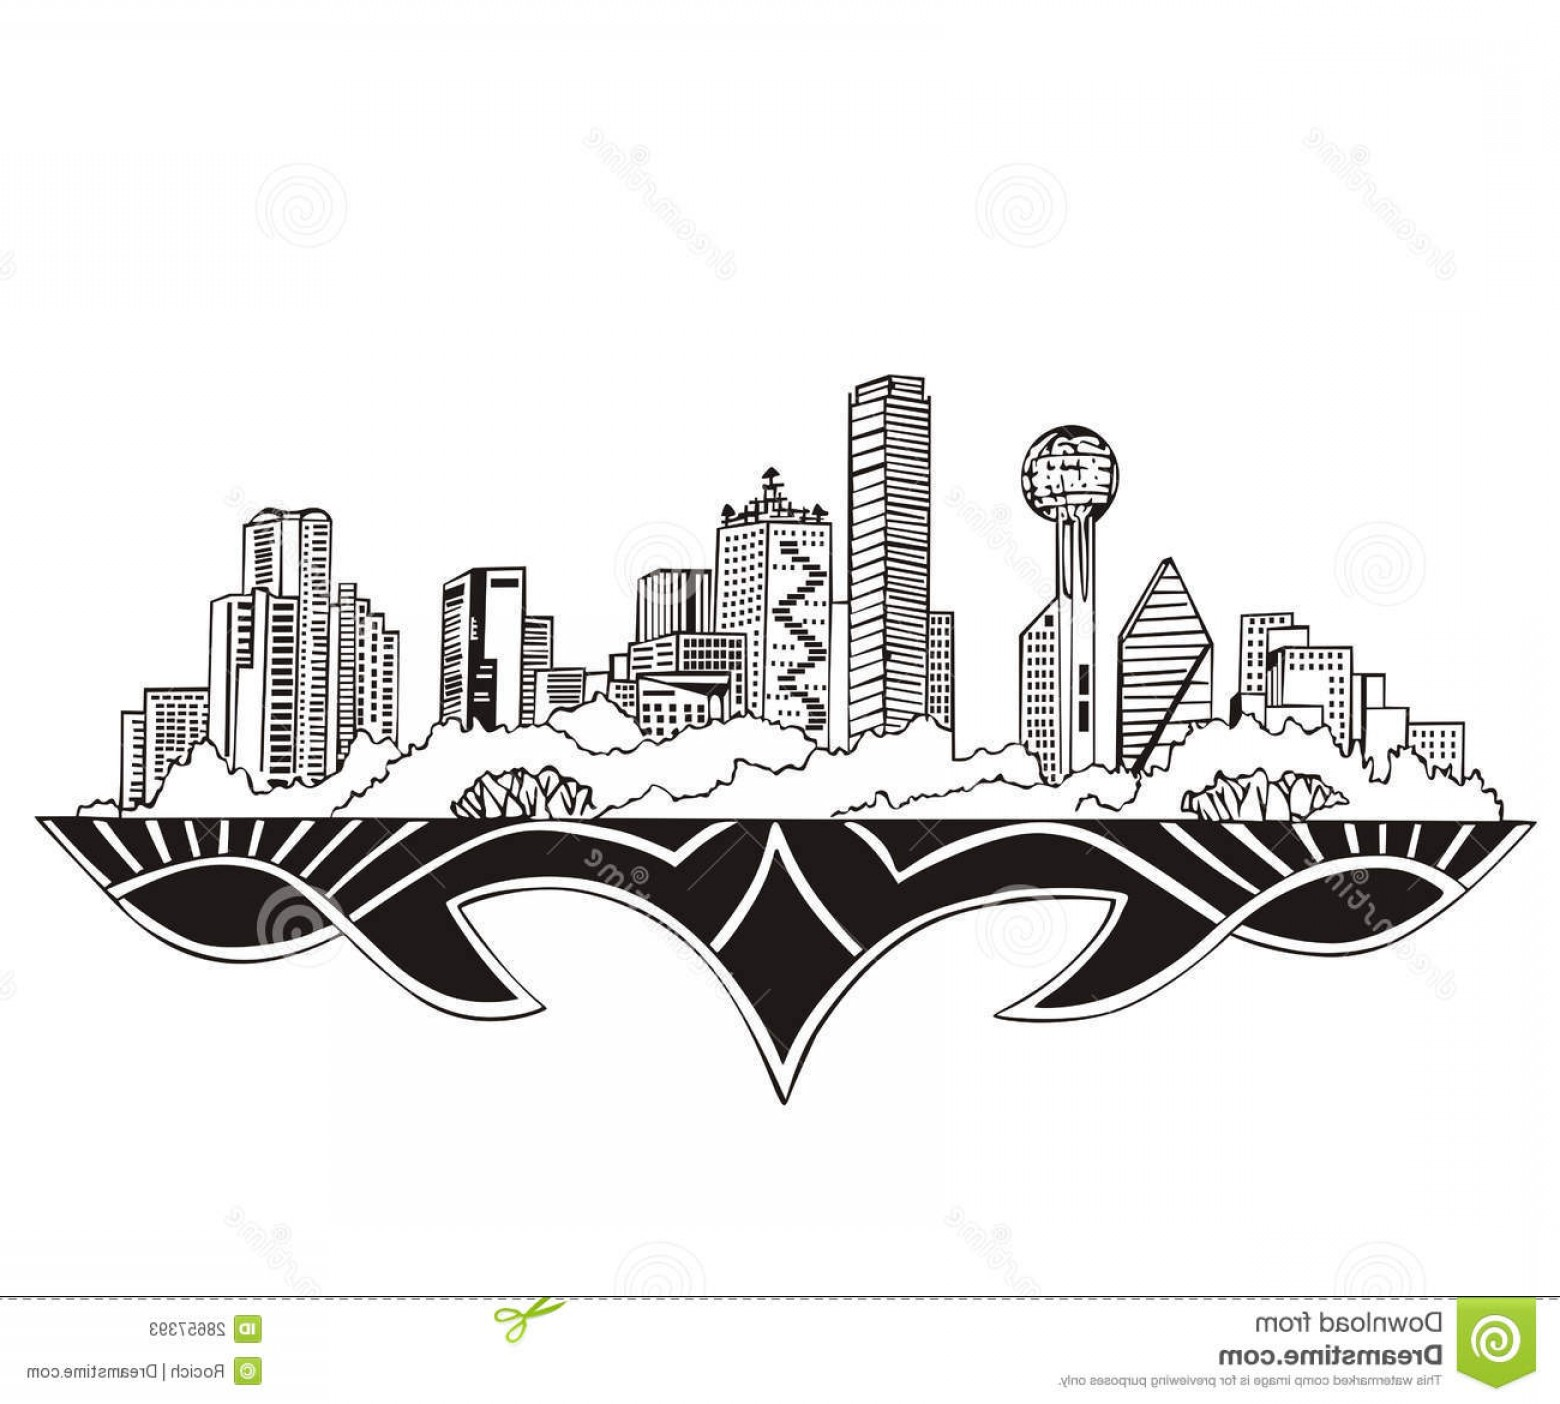 Texas Vector Drawing: Stock Photos Dallas Tx Skyline Image